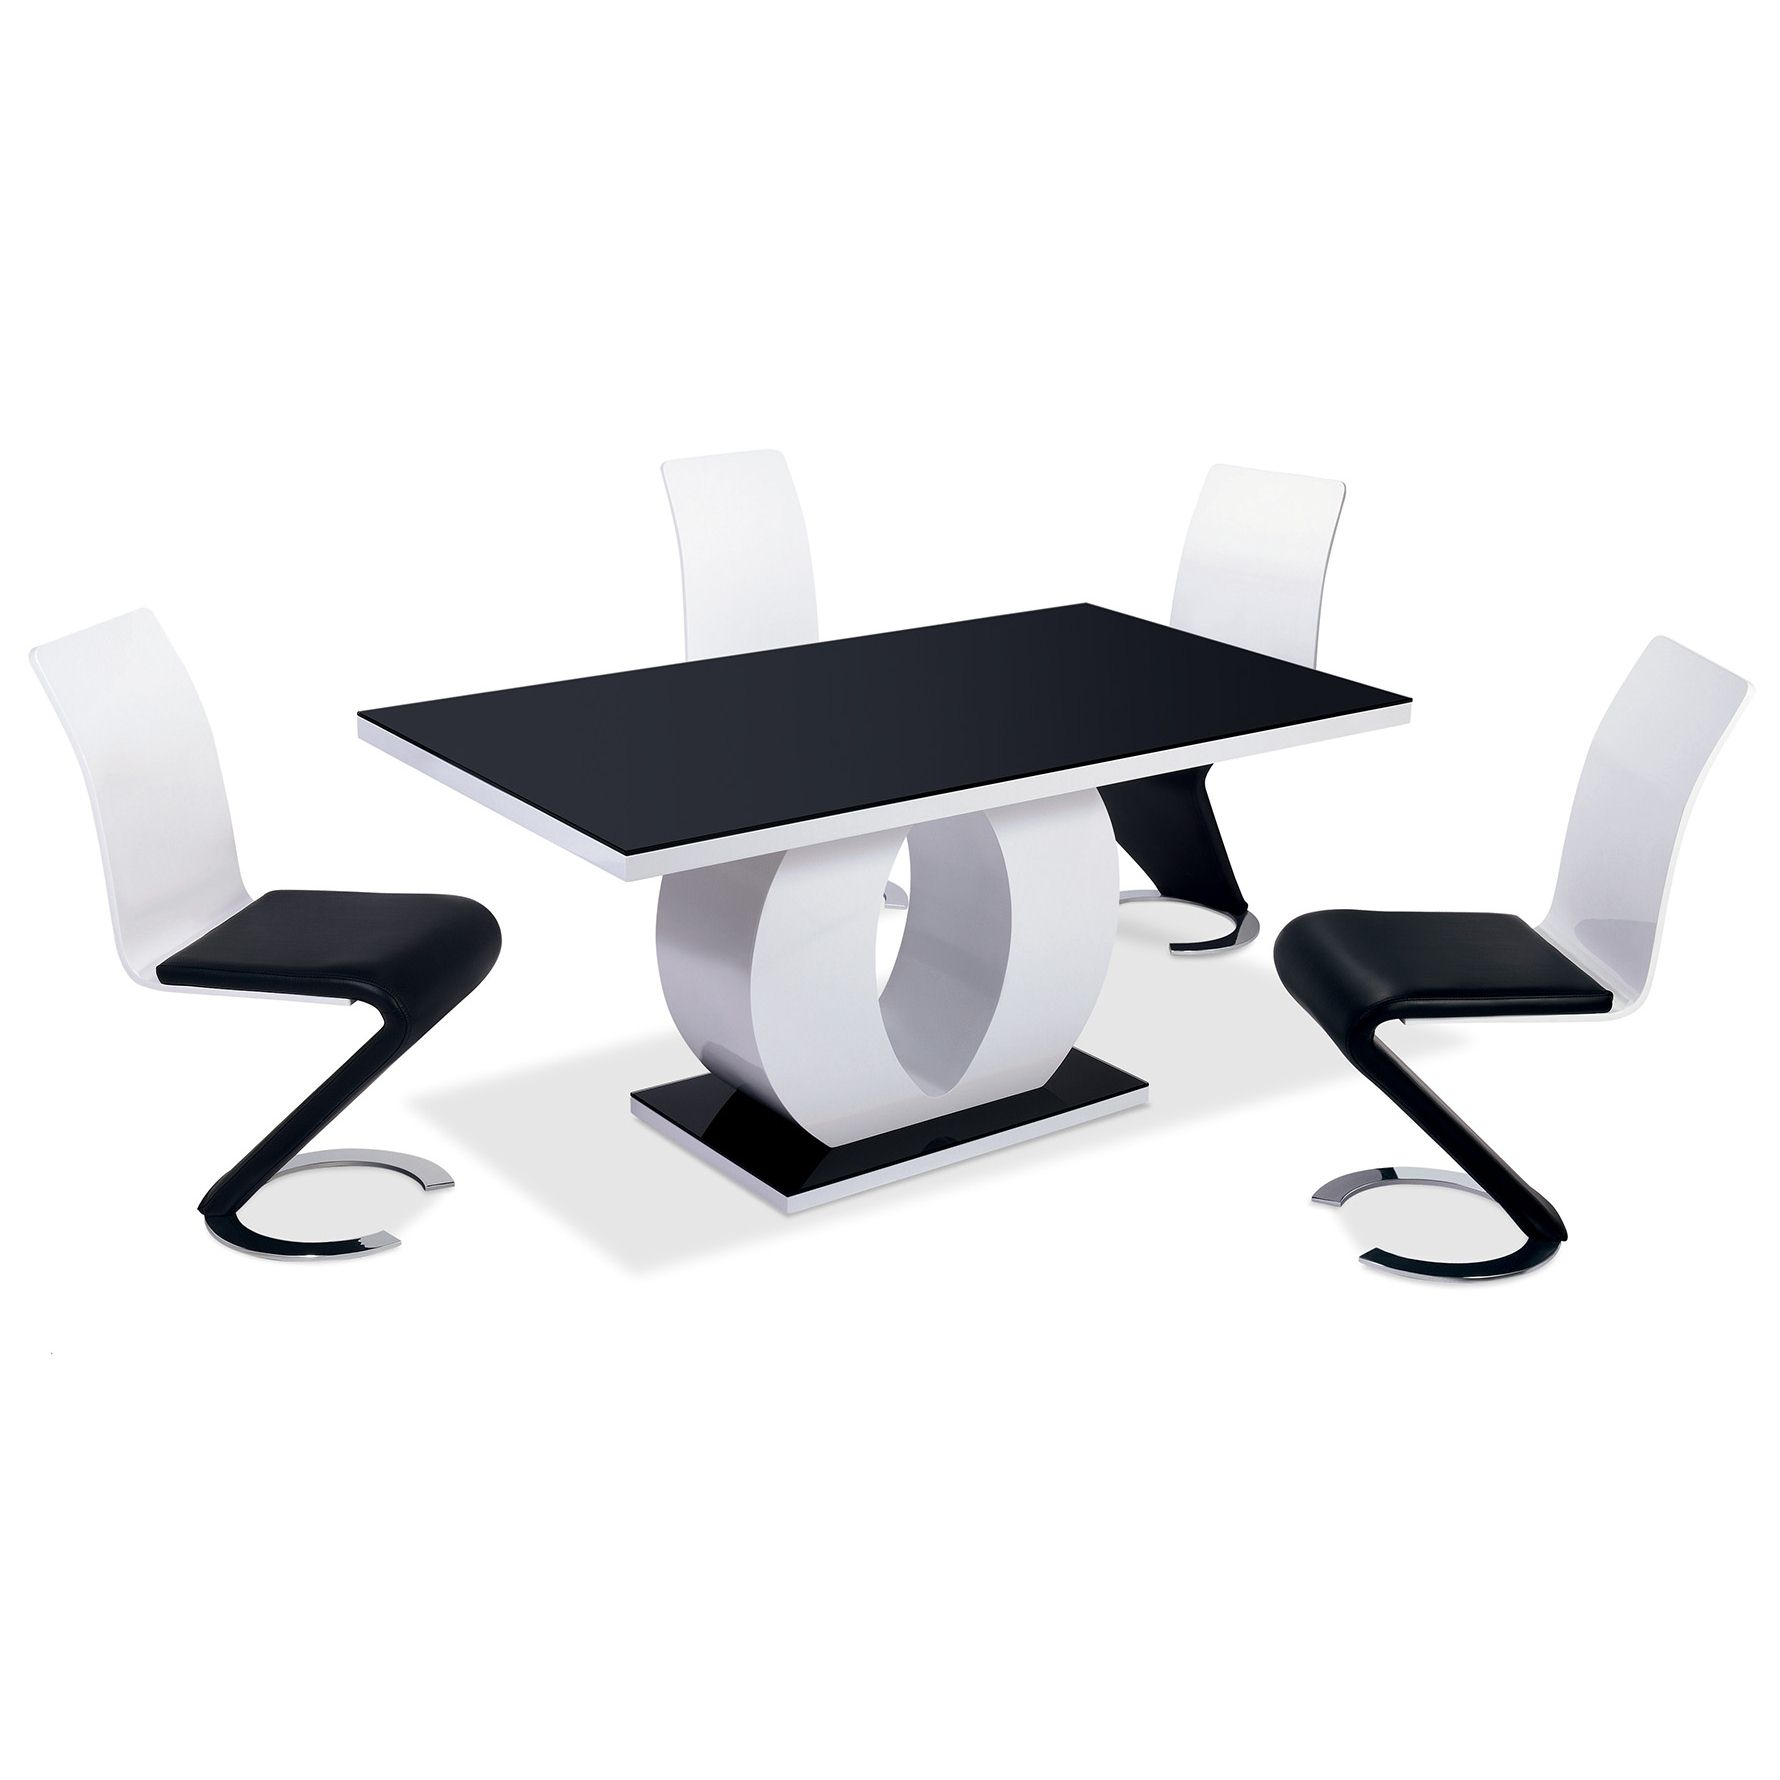 Deco in paris 2 table oamaru 4 chaises design noir et - Table et chaise noir et blanc ...